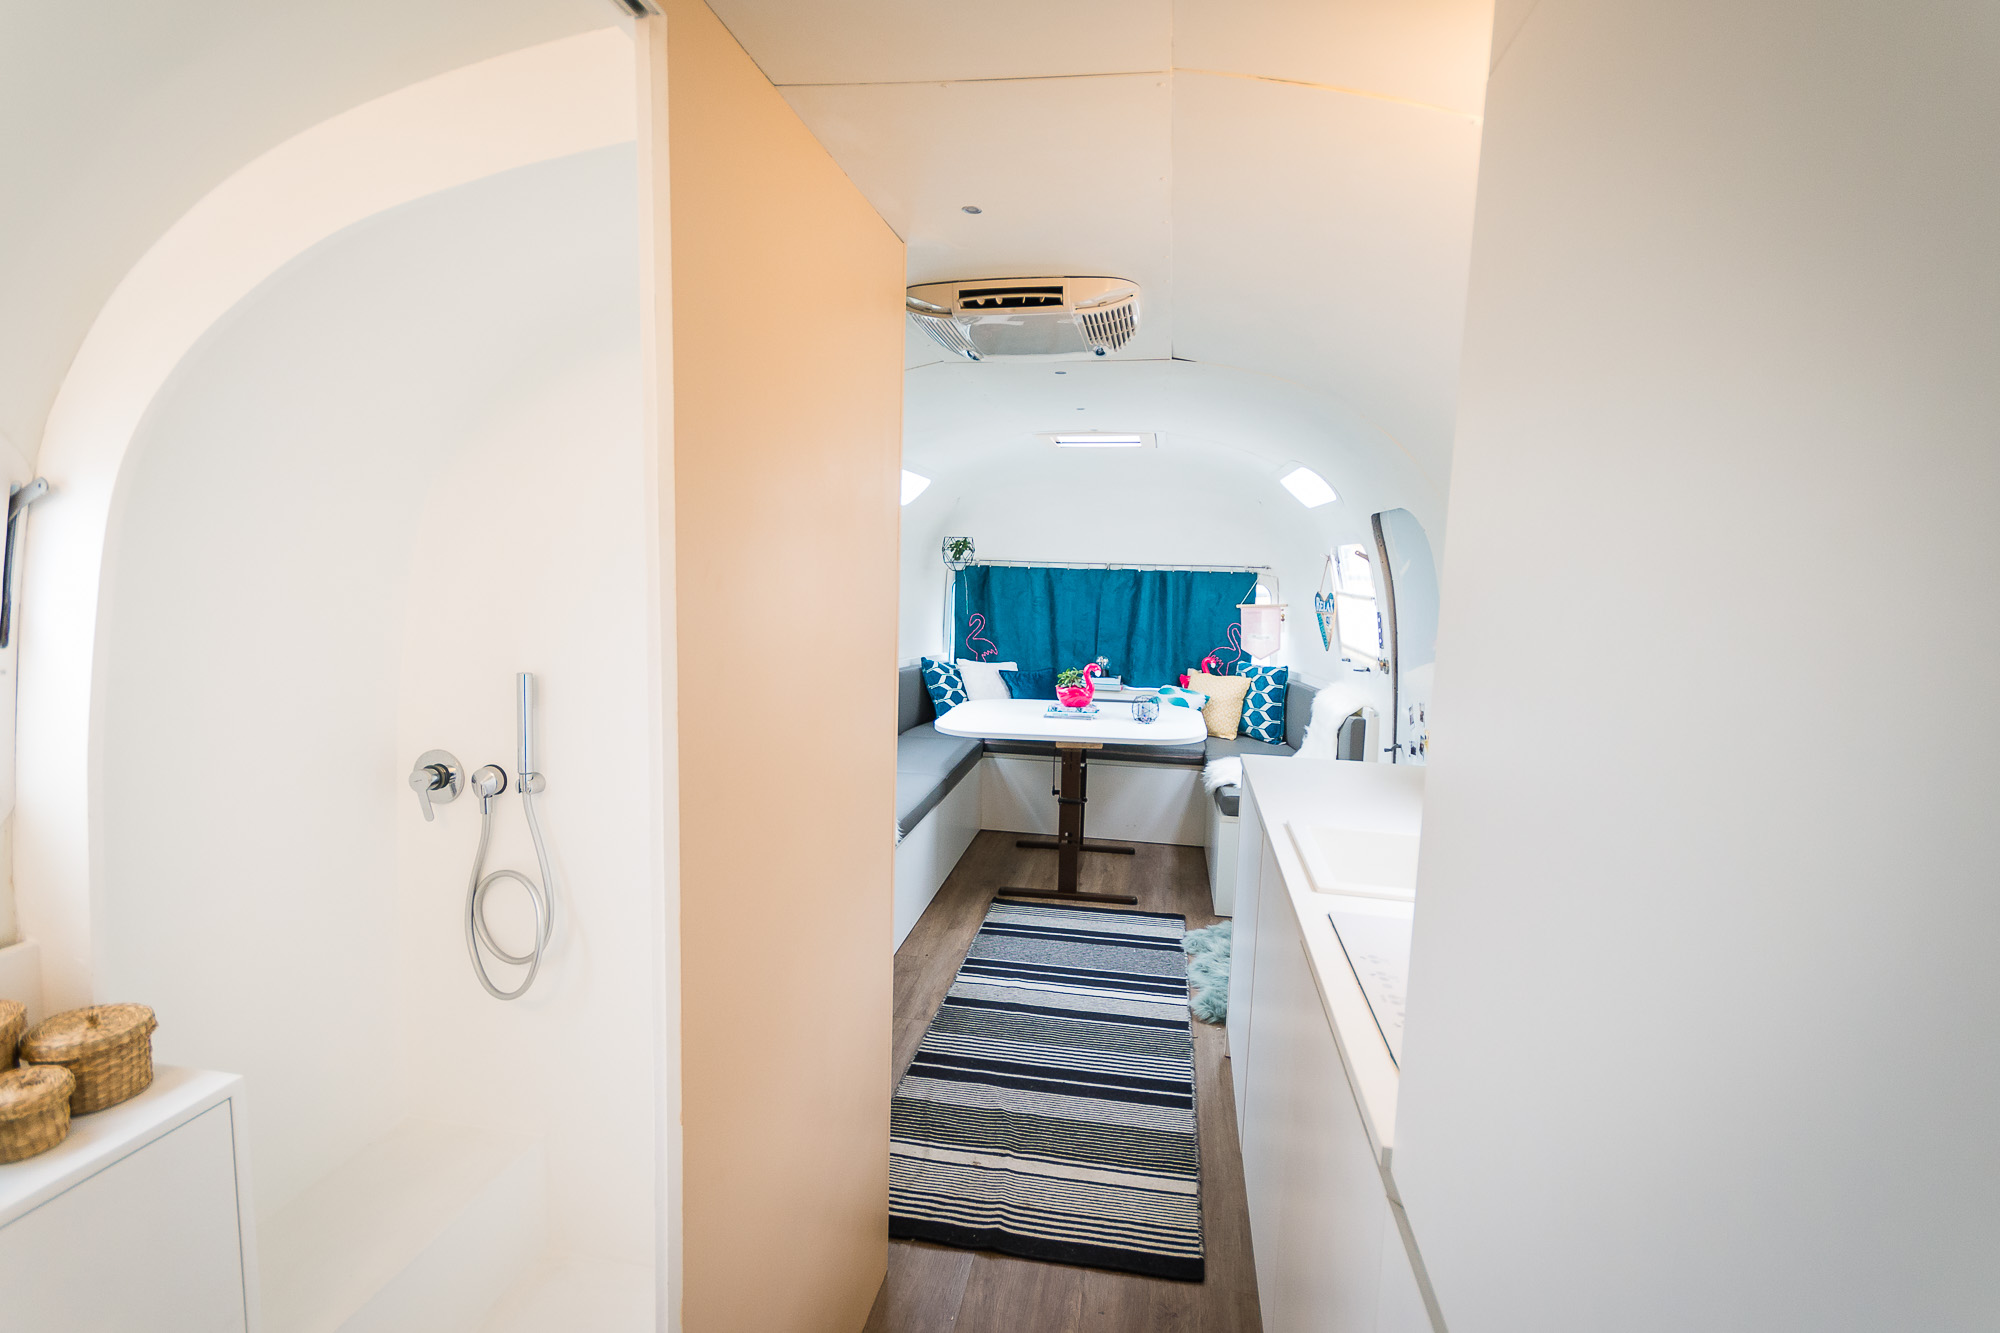 2020 Airstream Glamping 31ft jpg-8